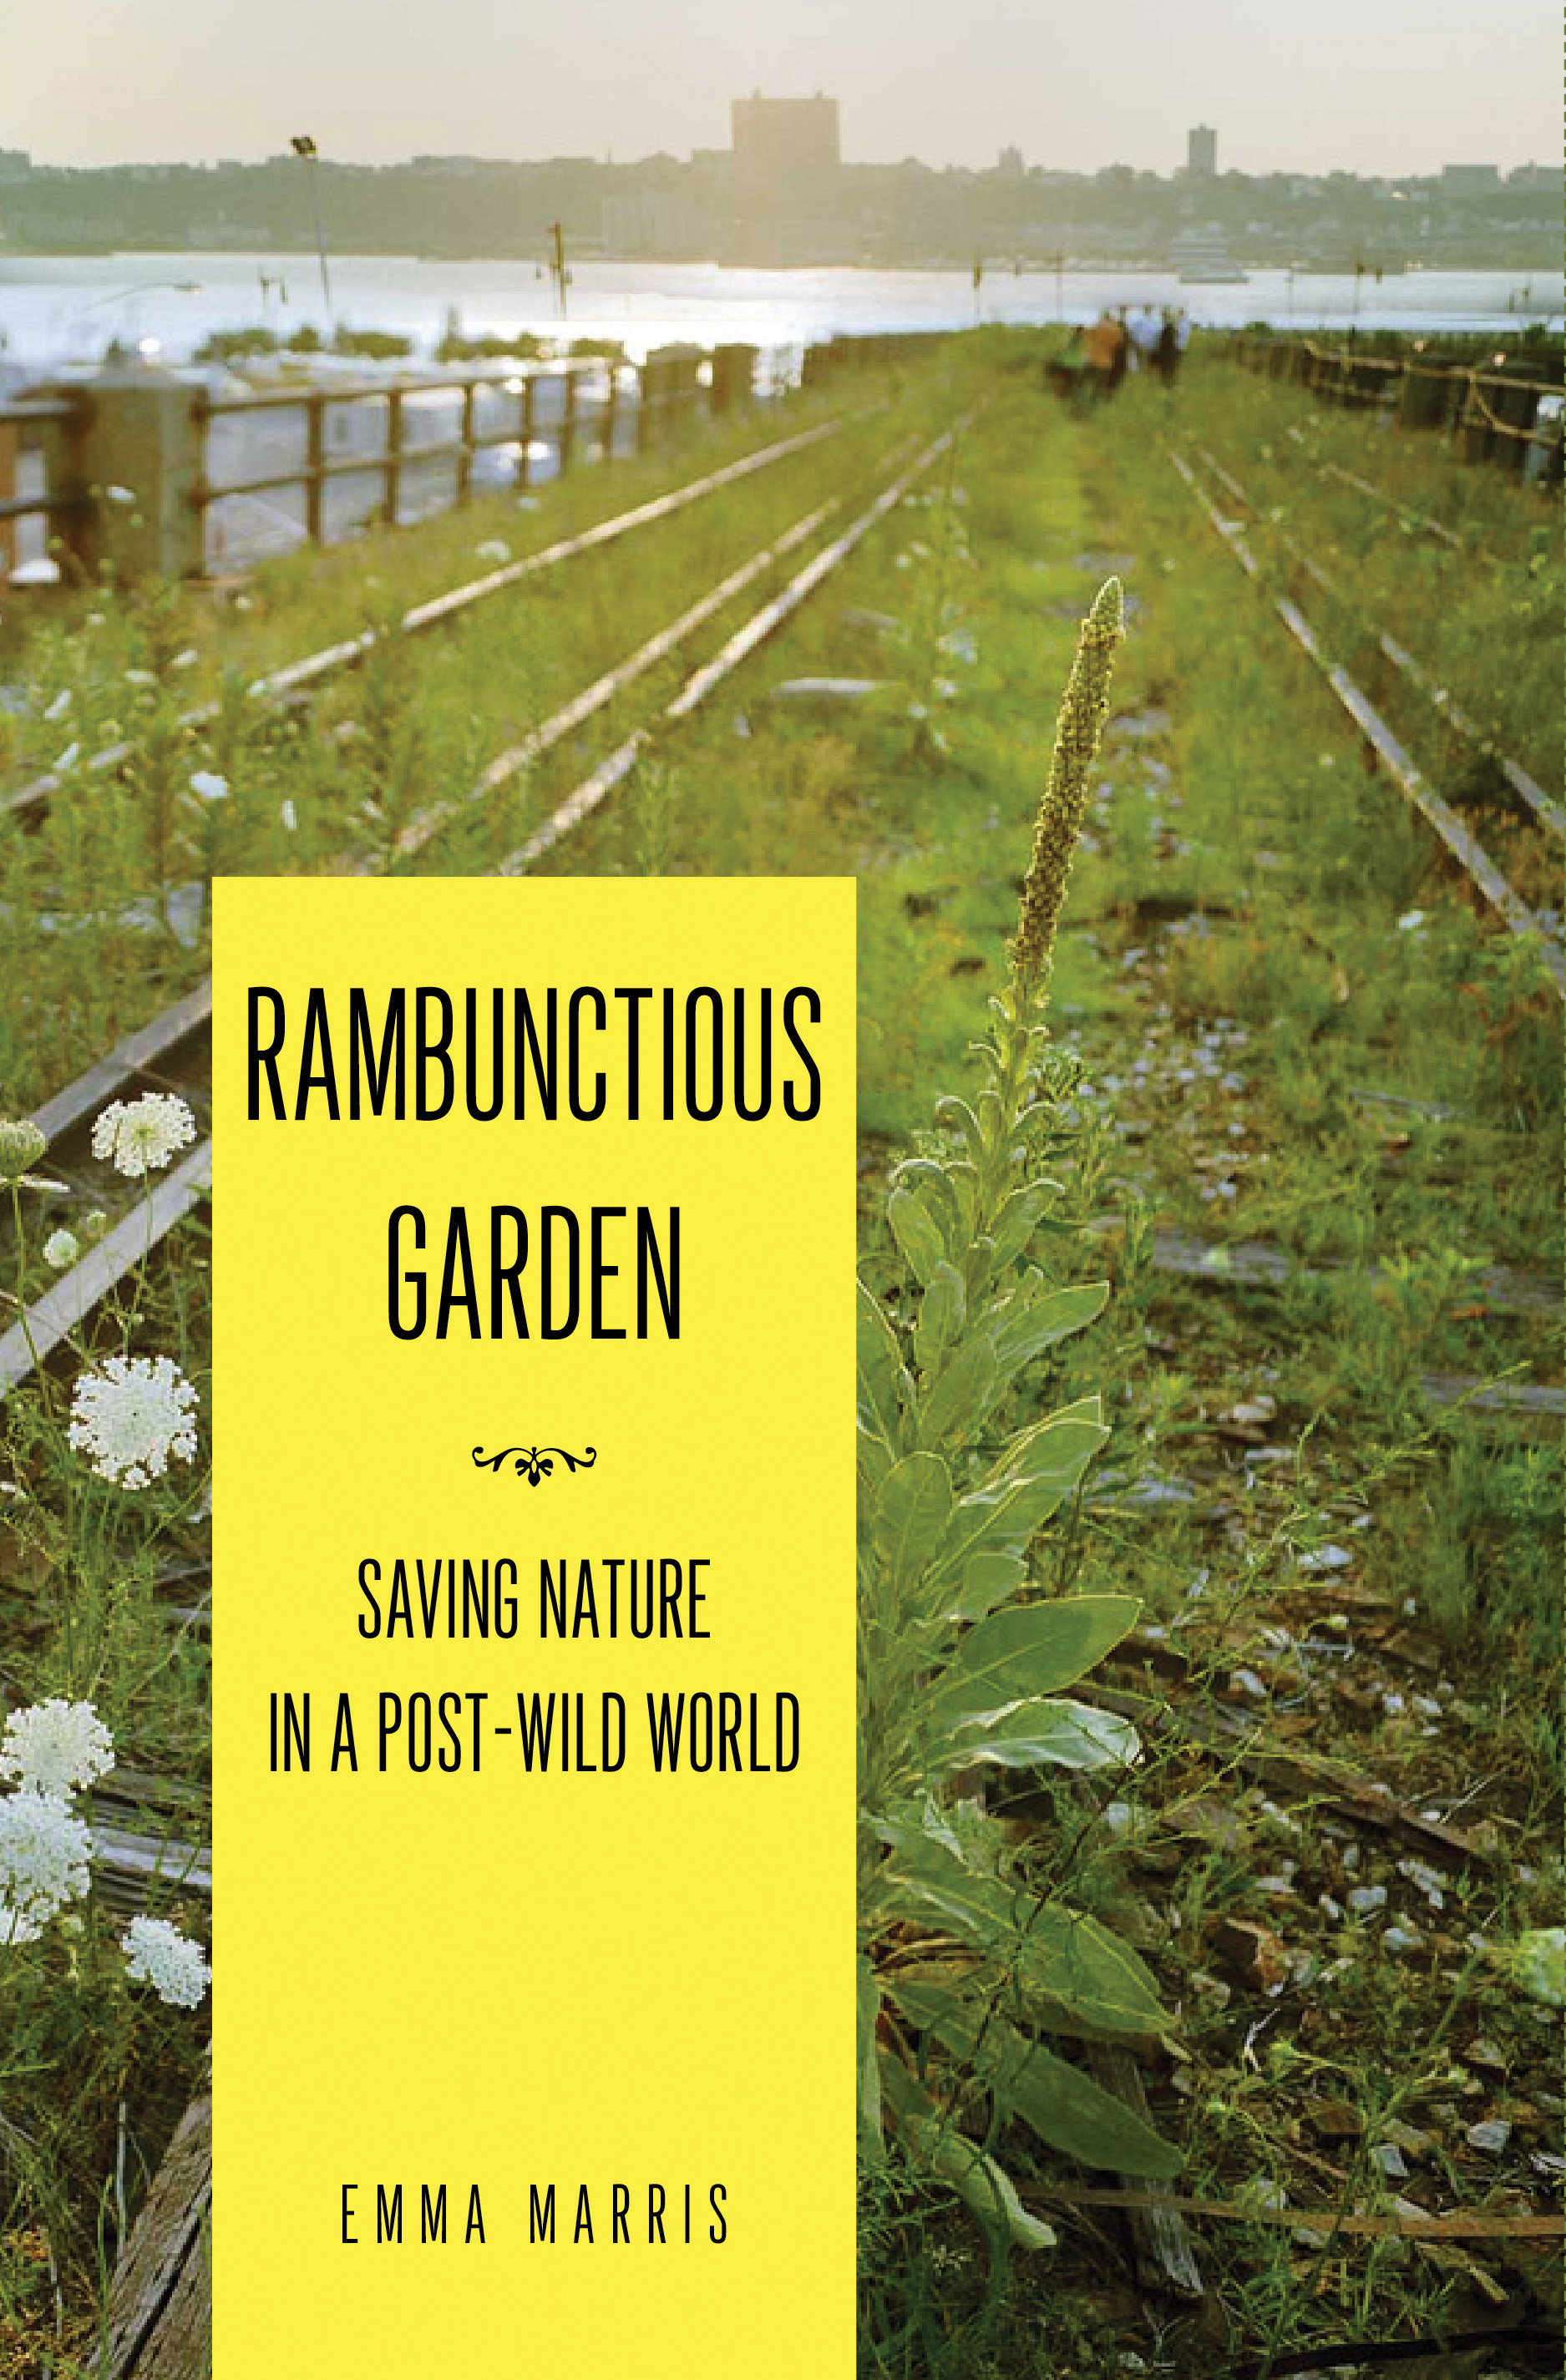 Rambunctious Garden Saving Nature in a Post-Wild World